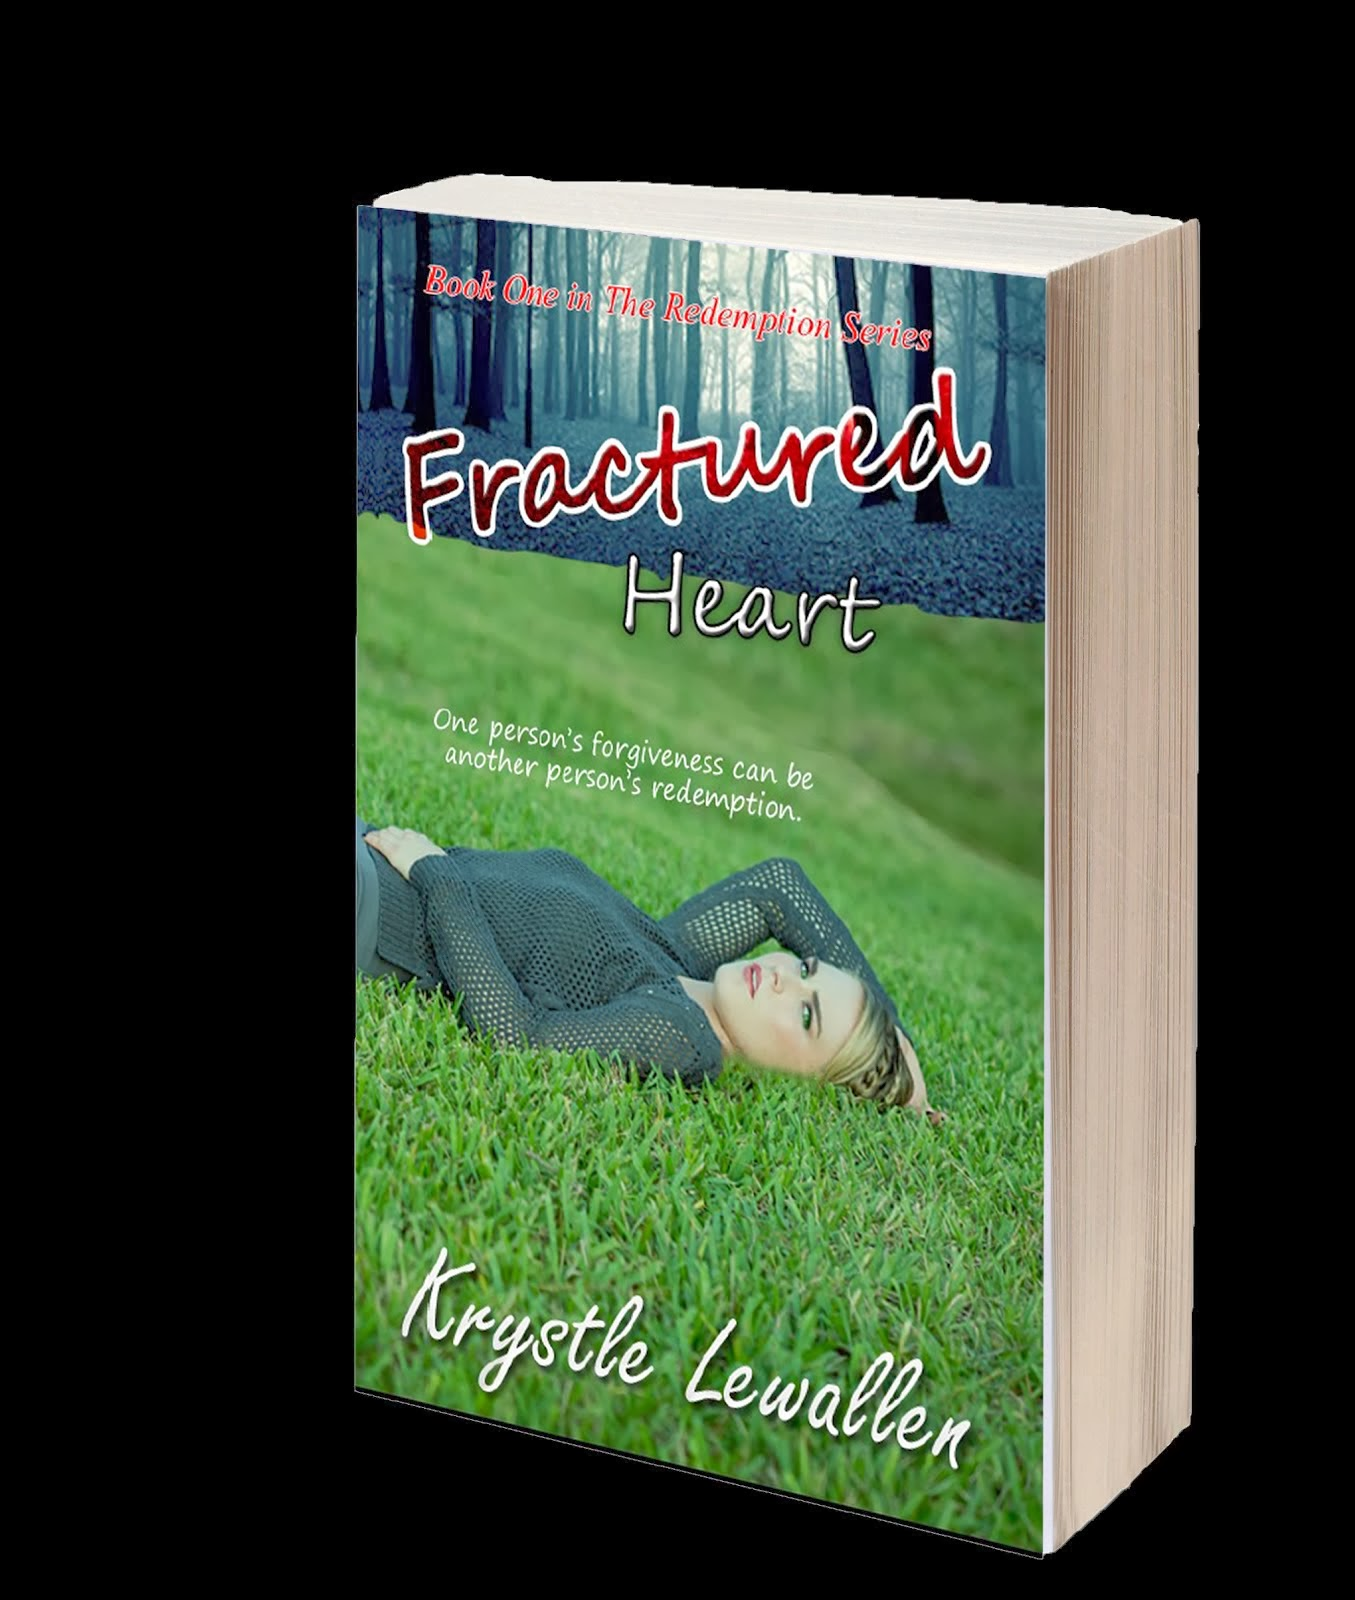 Fractured Heart by Krystle Lewallen